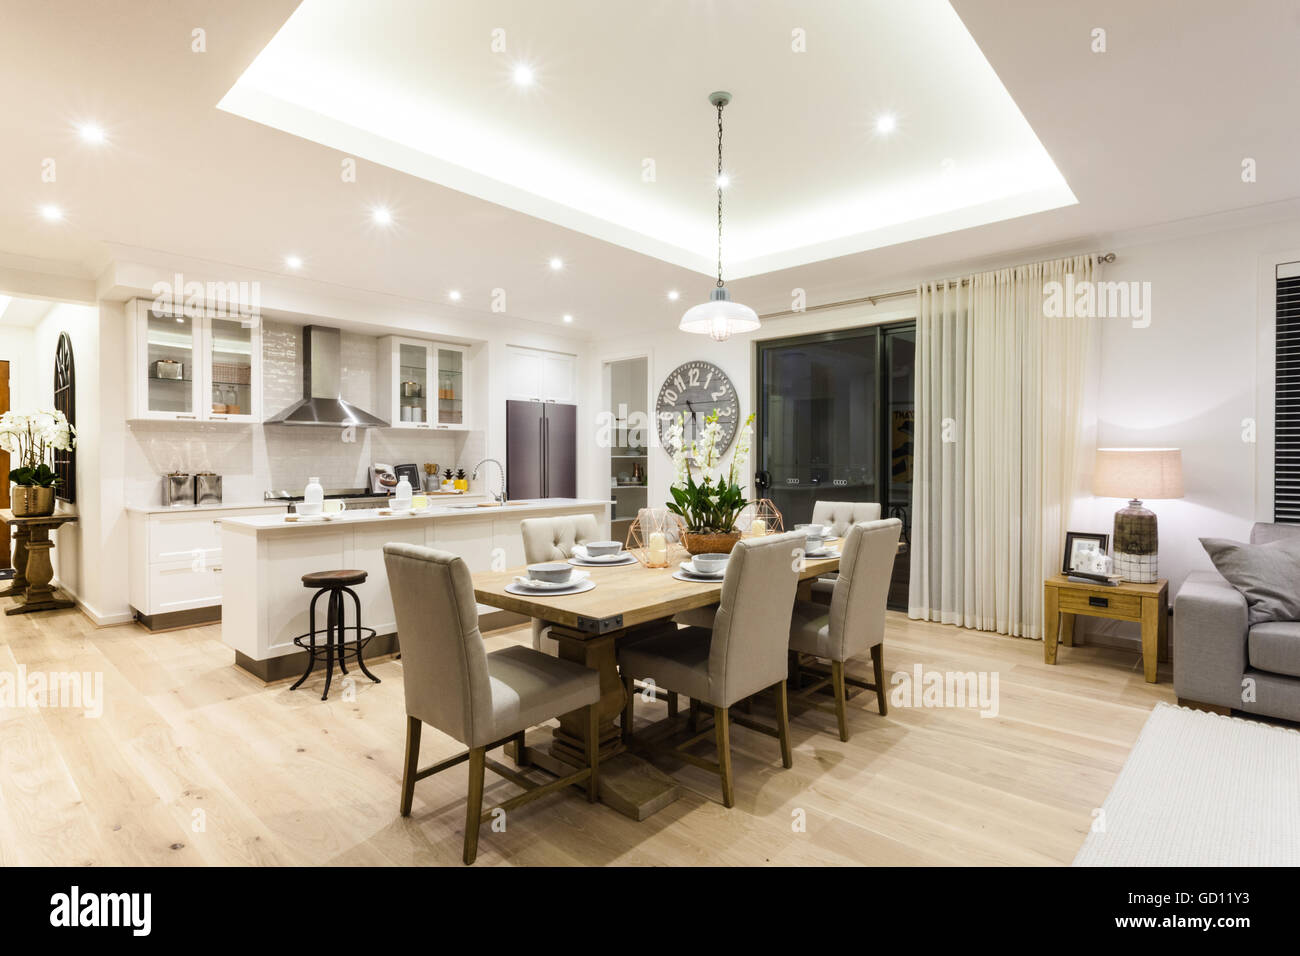 Modern living room and kitchen with a wooden floor illuminated at night with lights - Stock Image